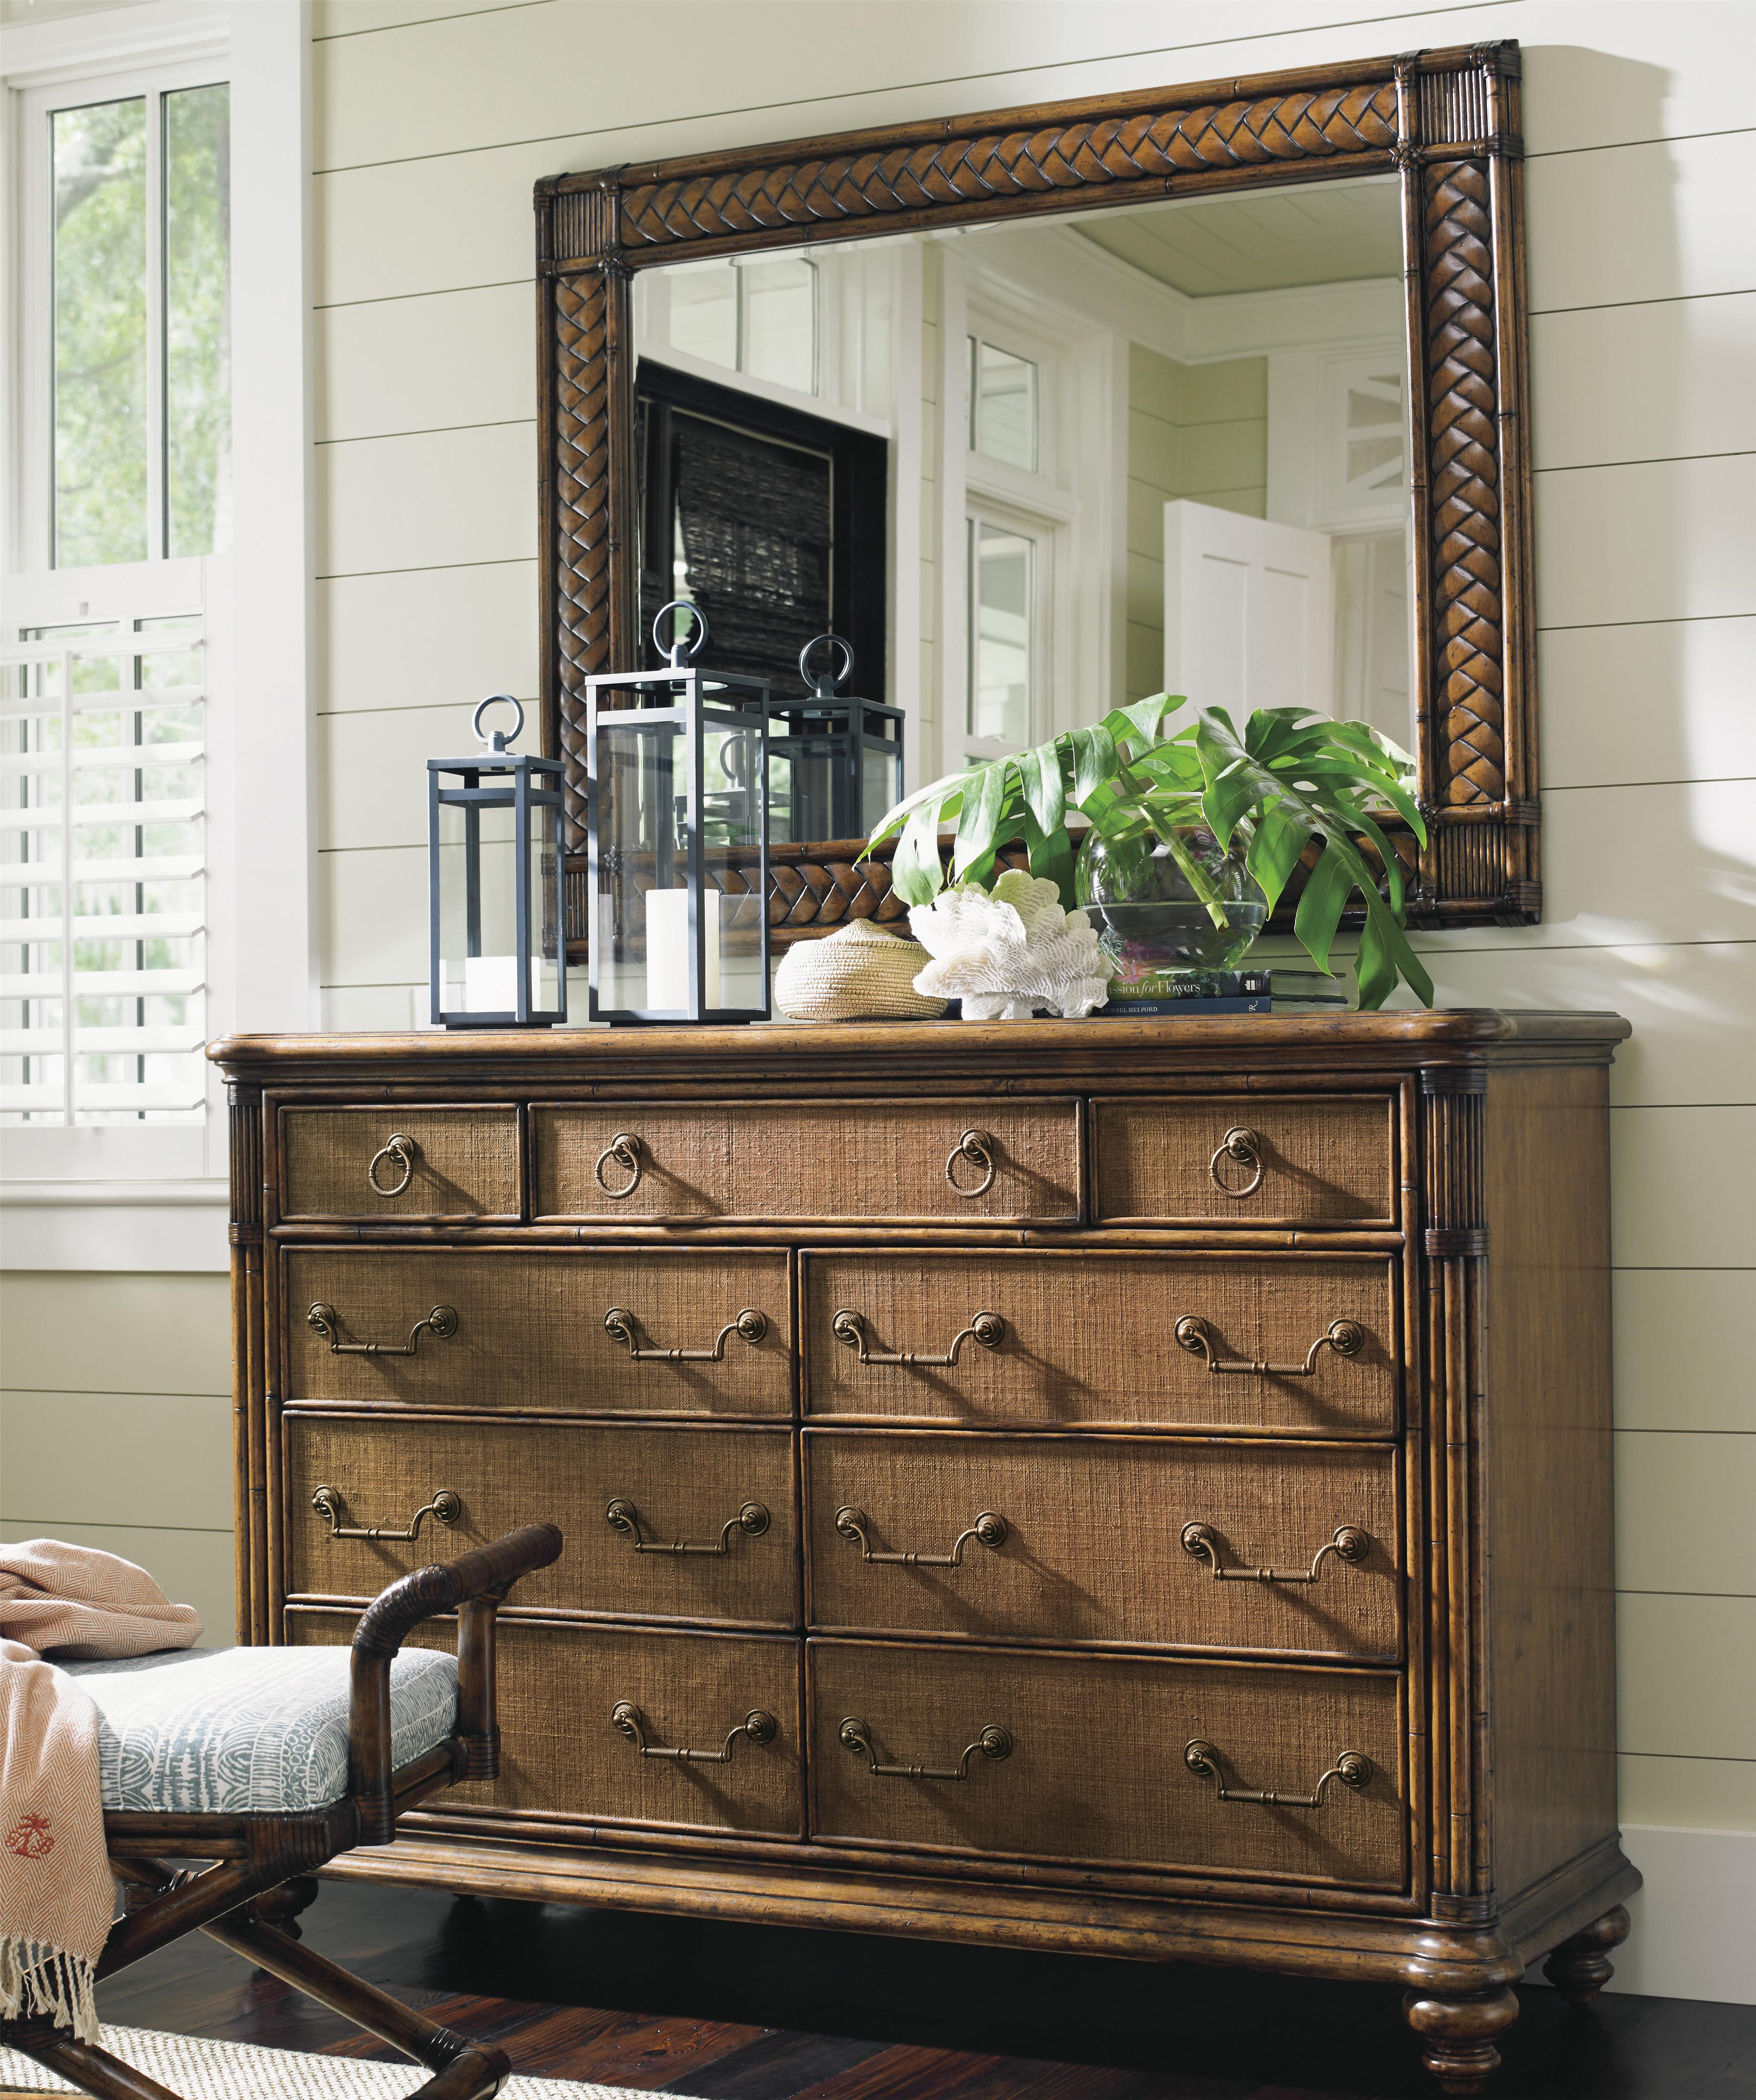 Bali Hai Breakers Double Dresser and Mirror Set by Tommy Bahama Home at Baer's Furniture